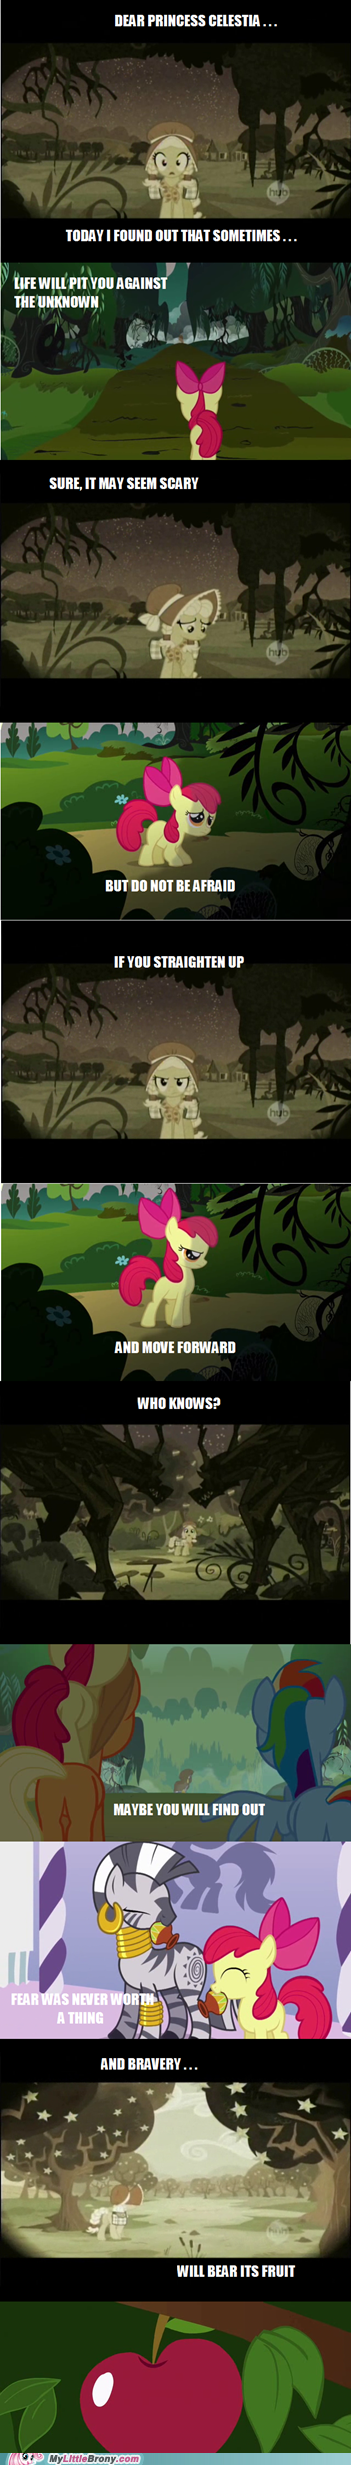 apple bloom,bravery,comic,comics,fear,granny smith